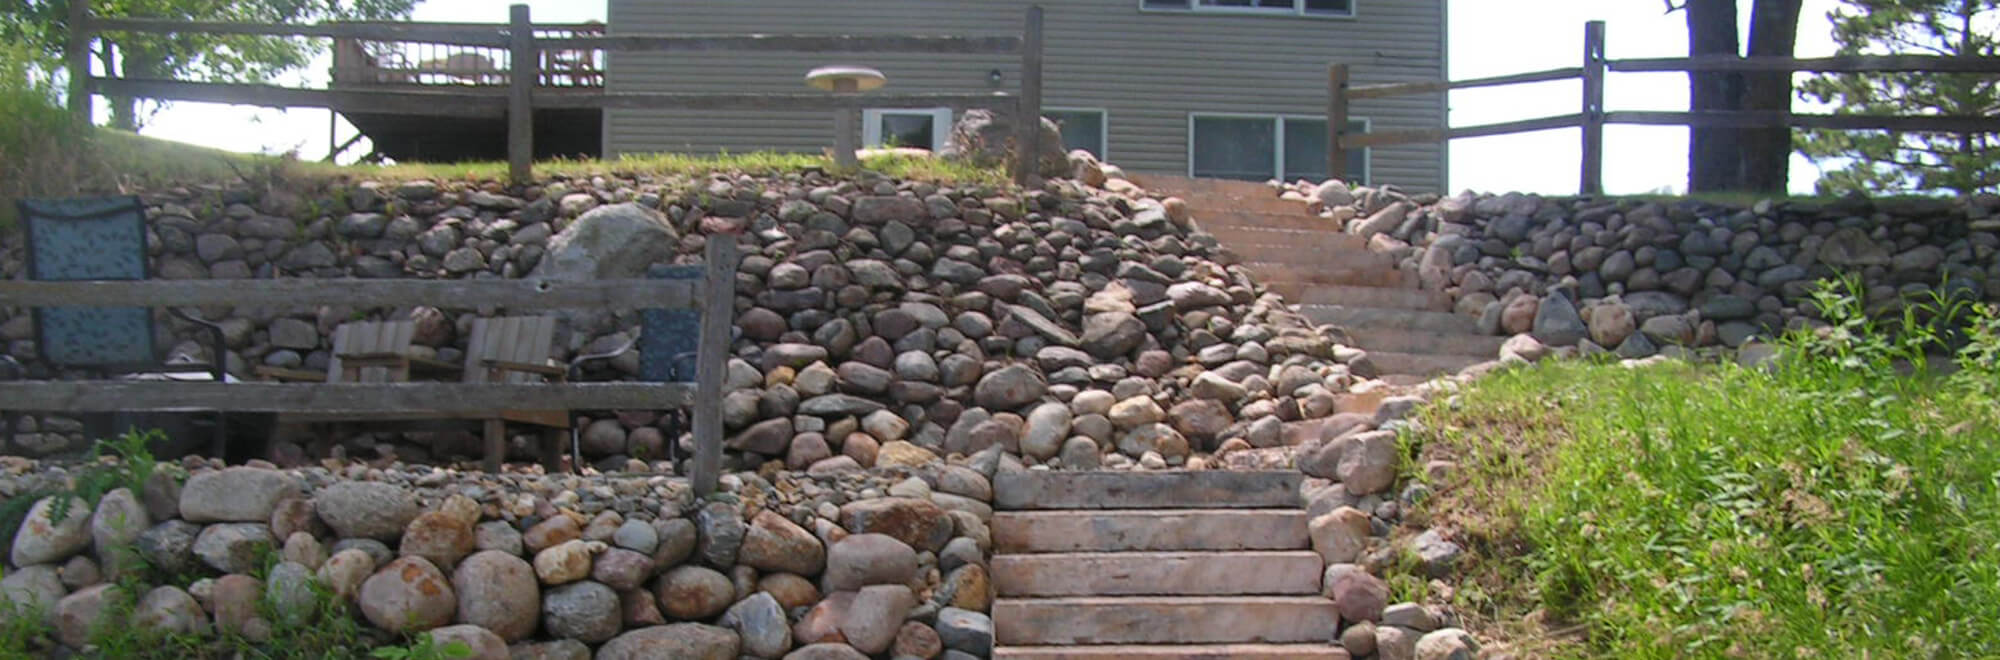 Steep grade in a residential backyard re-inforced with rip rap boulders and stone steps